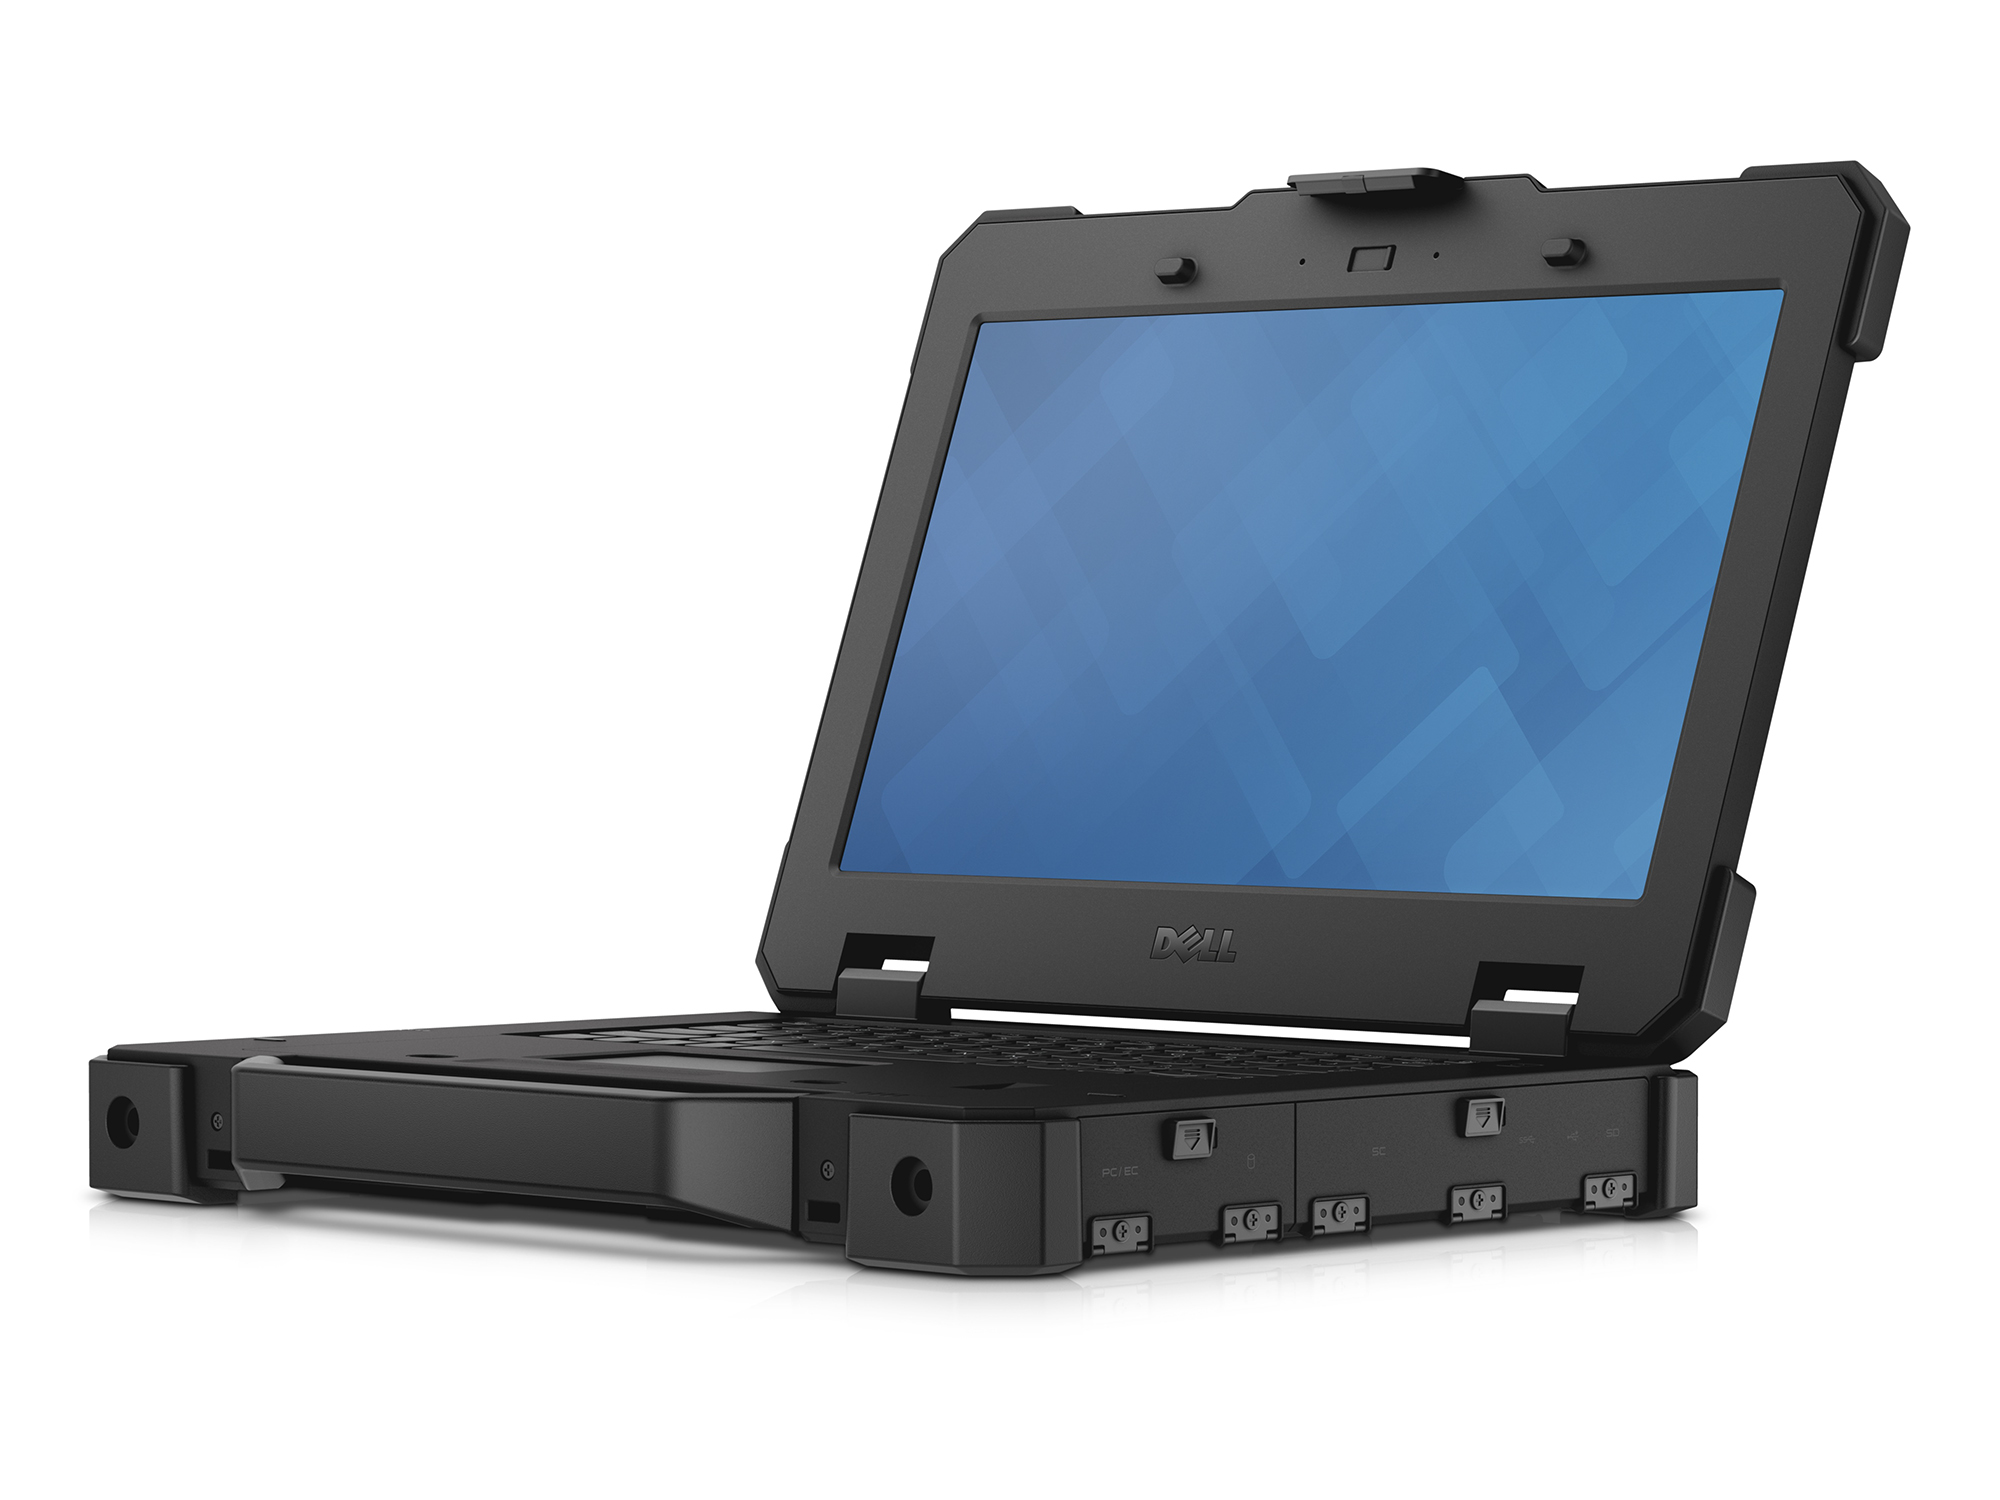 dell latitude rugged extreme lineup goes hardcore with the new